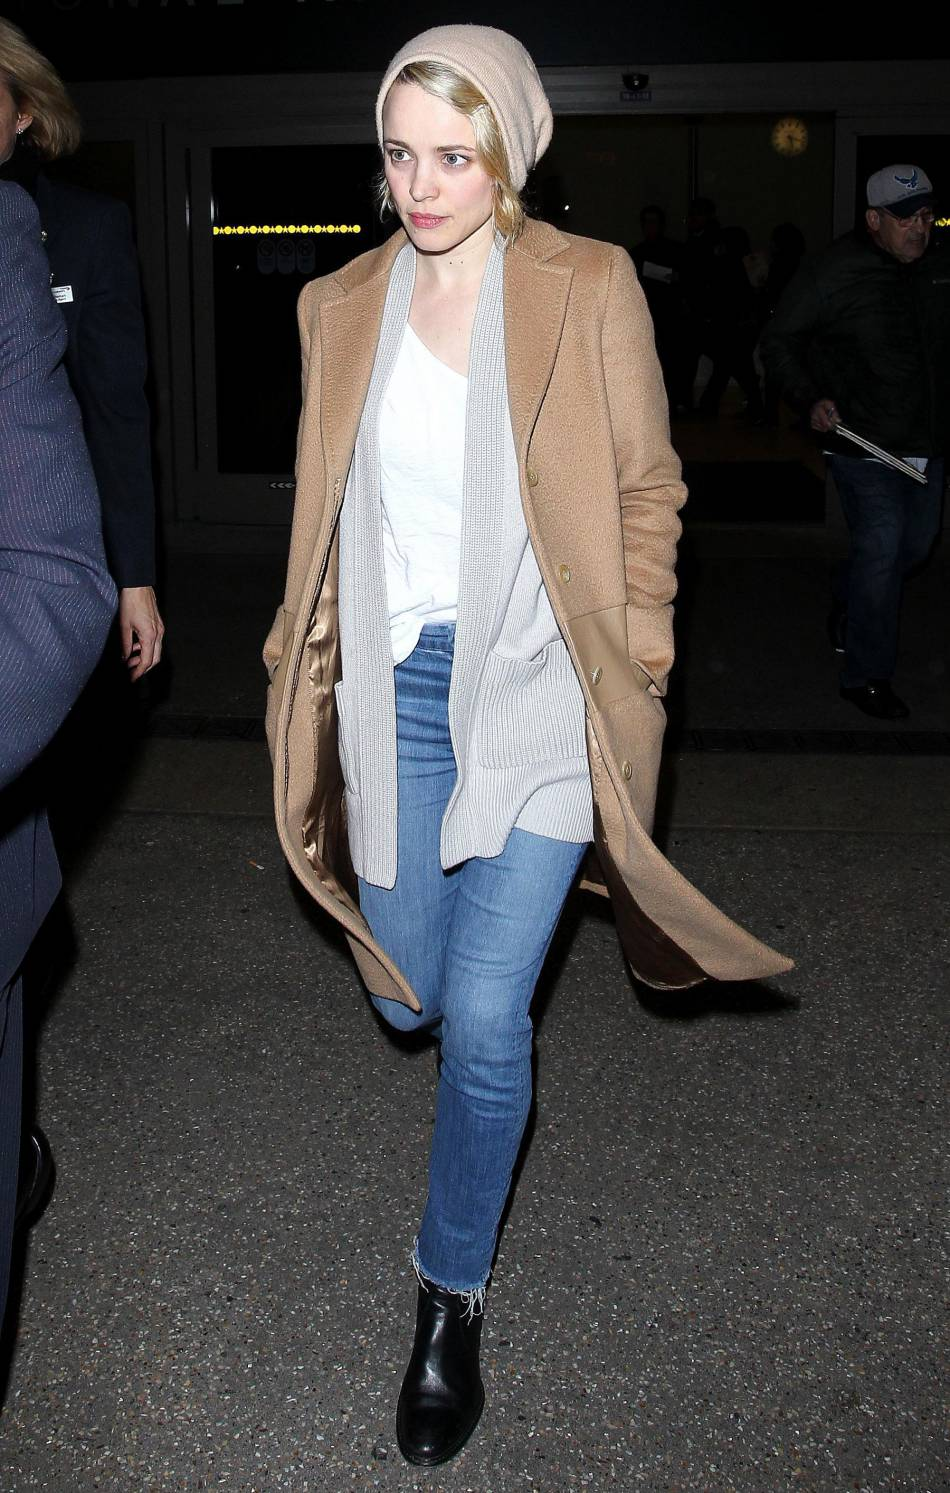 Rachel Mc Adams arrive à l'aéroport de Los Angeles